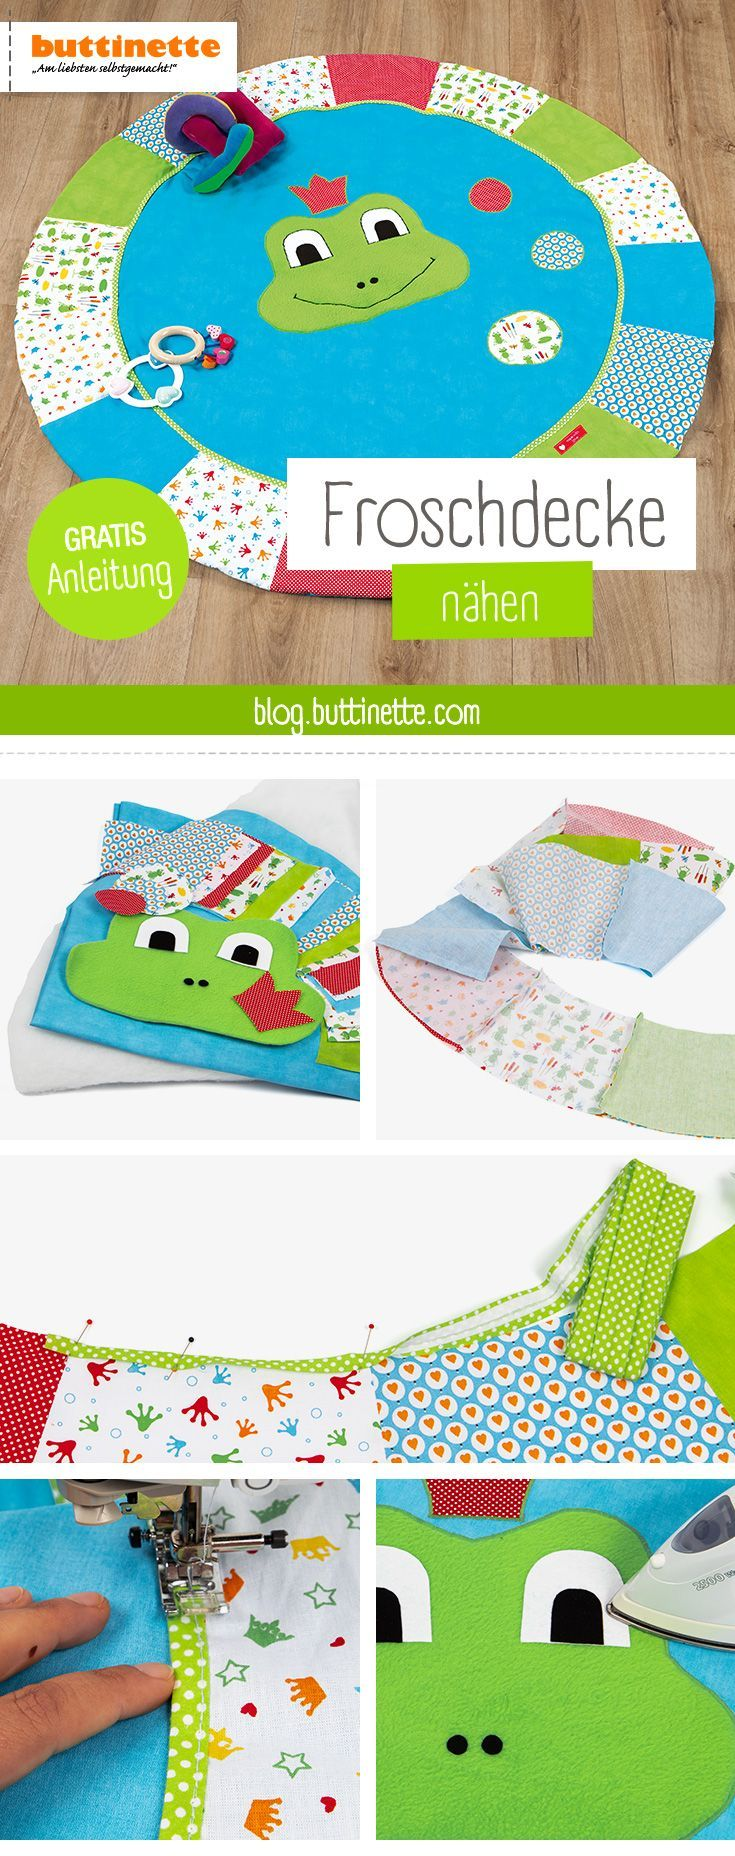 A round playmat in cheerful colors is just the thing for little world explorers  Click here for the free sewing instructions sew einfach clothes crafts for beginners idea...